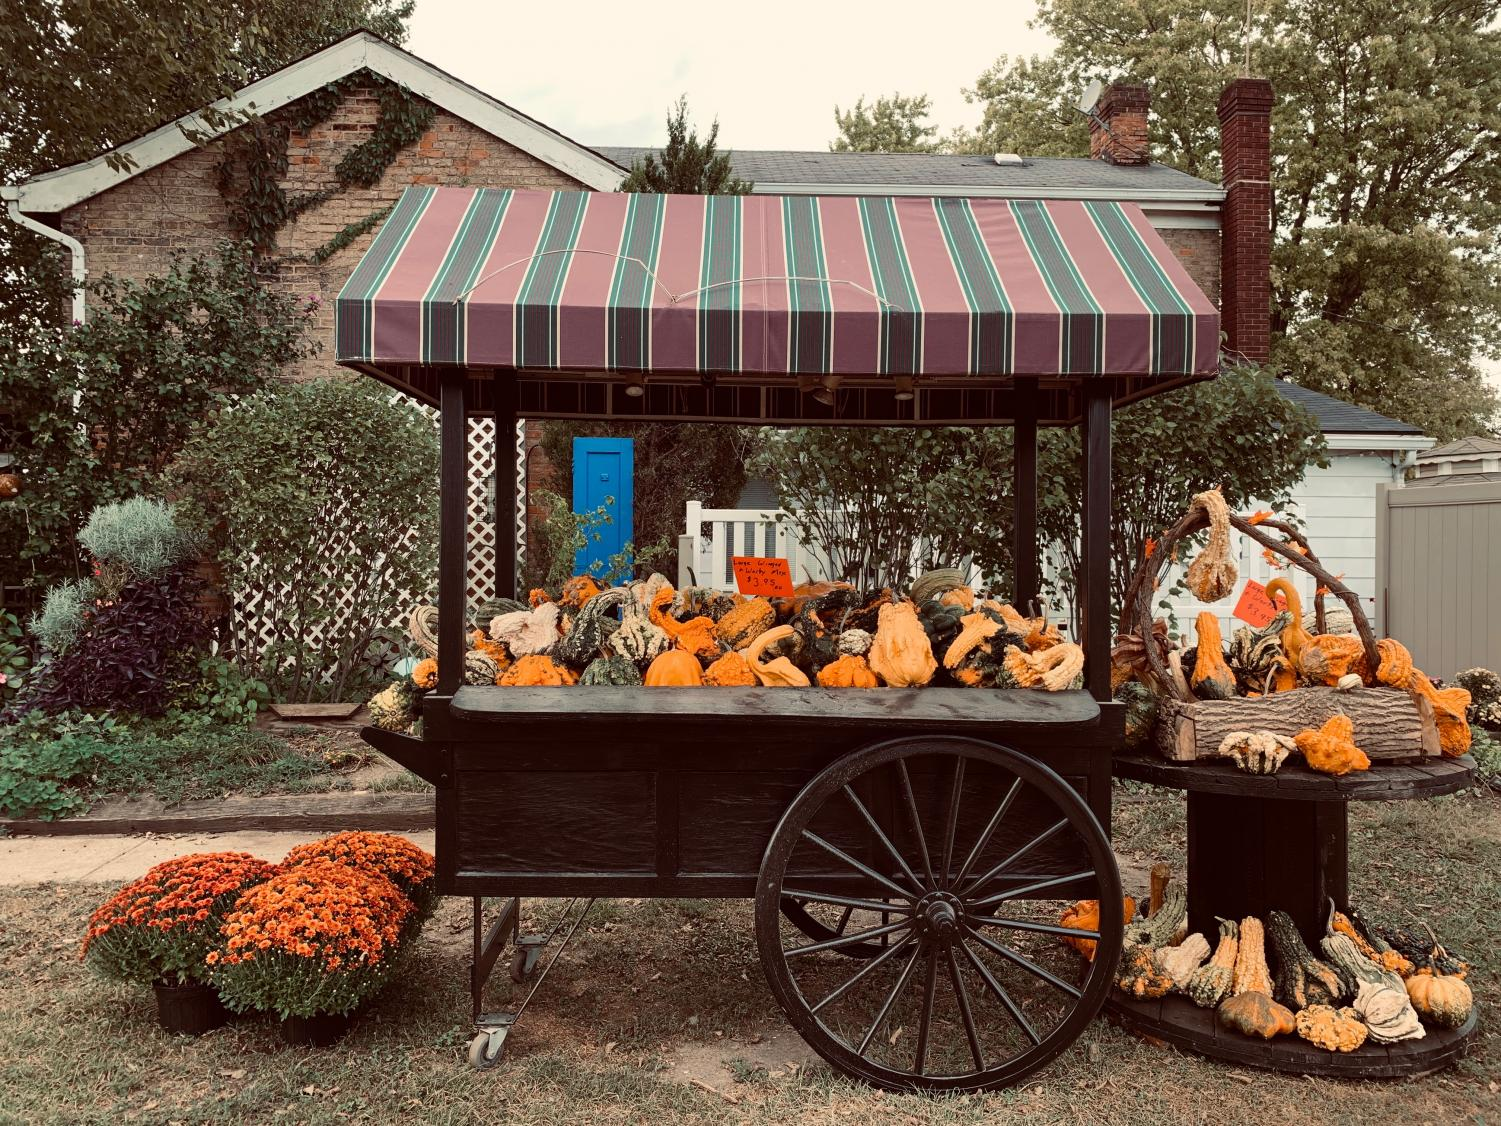 A festive display of gourds set up at Brown's Family Farm Market.